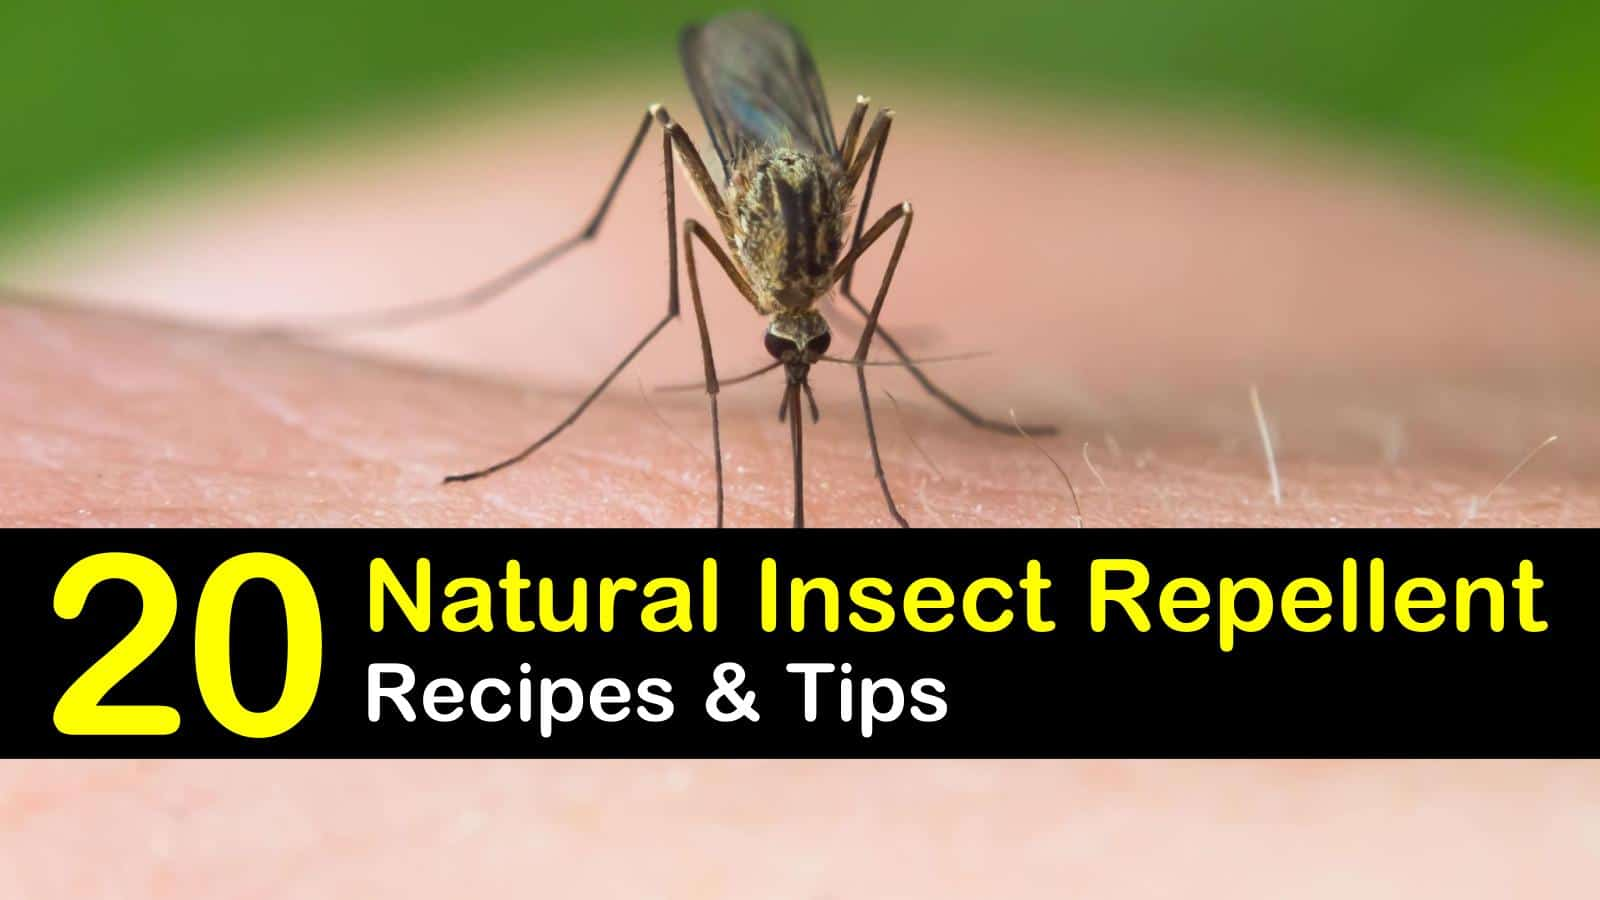 natural insect repellent titleimg1